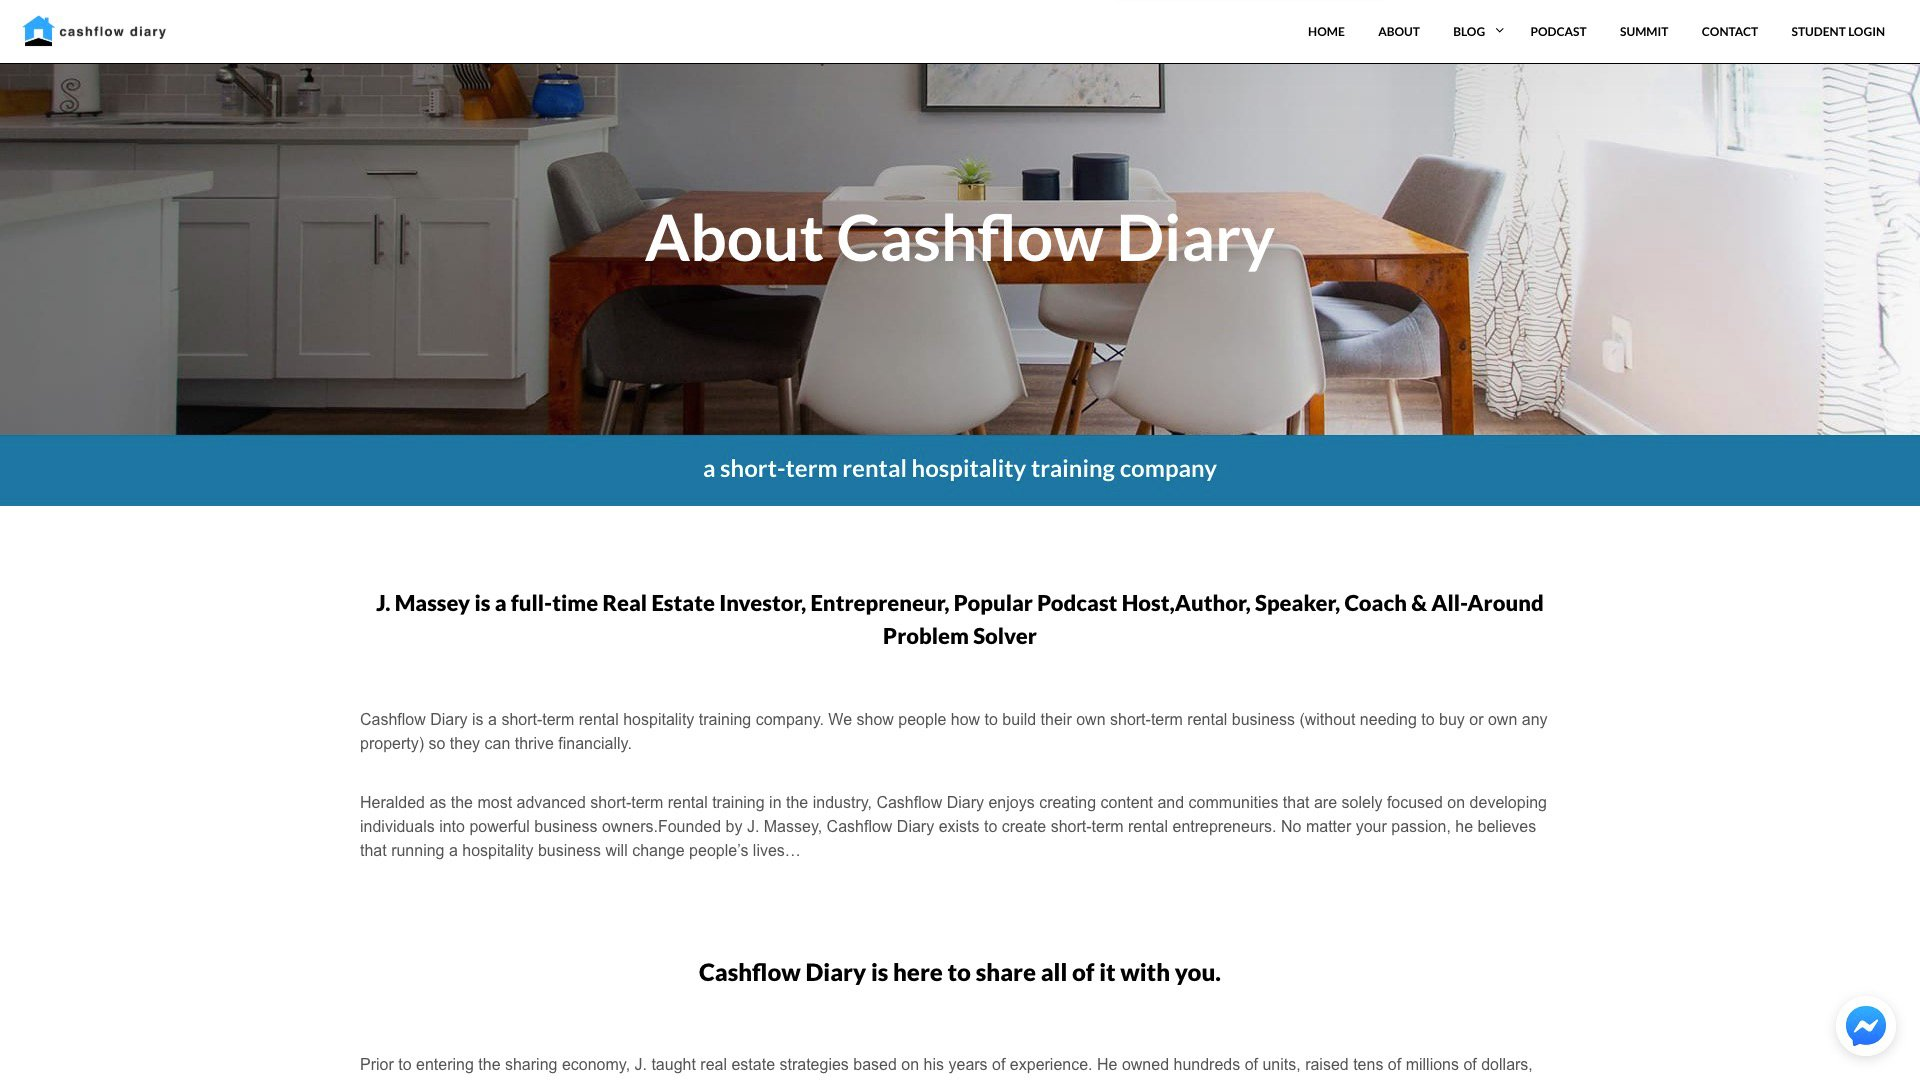 A Photo Of Cashflow Diary's About Page